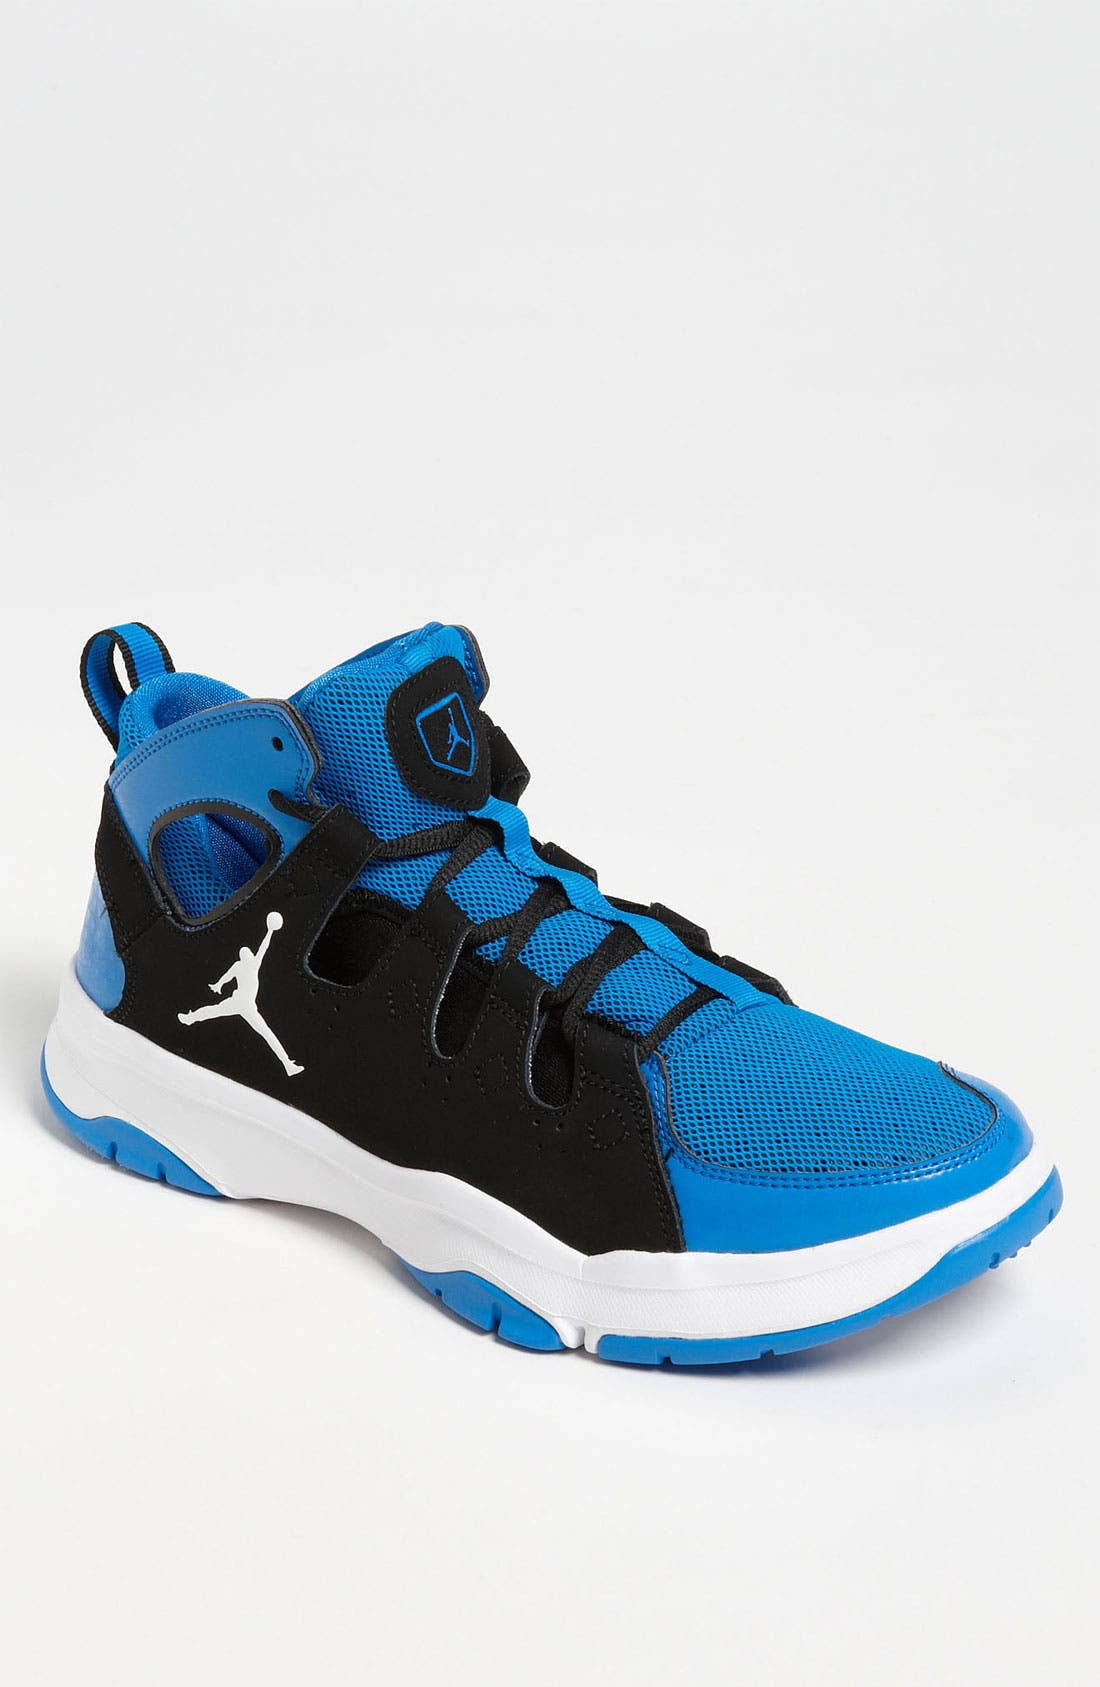 Main Image - Nike 'Jordan Legend TR' Basketball Shoe (Men) (Online Only)